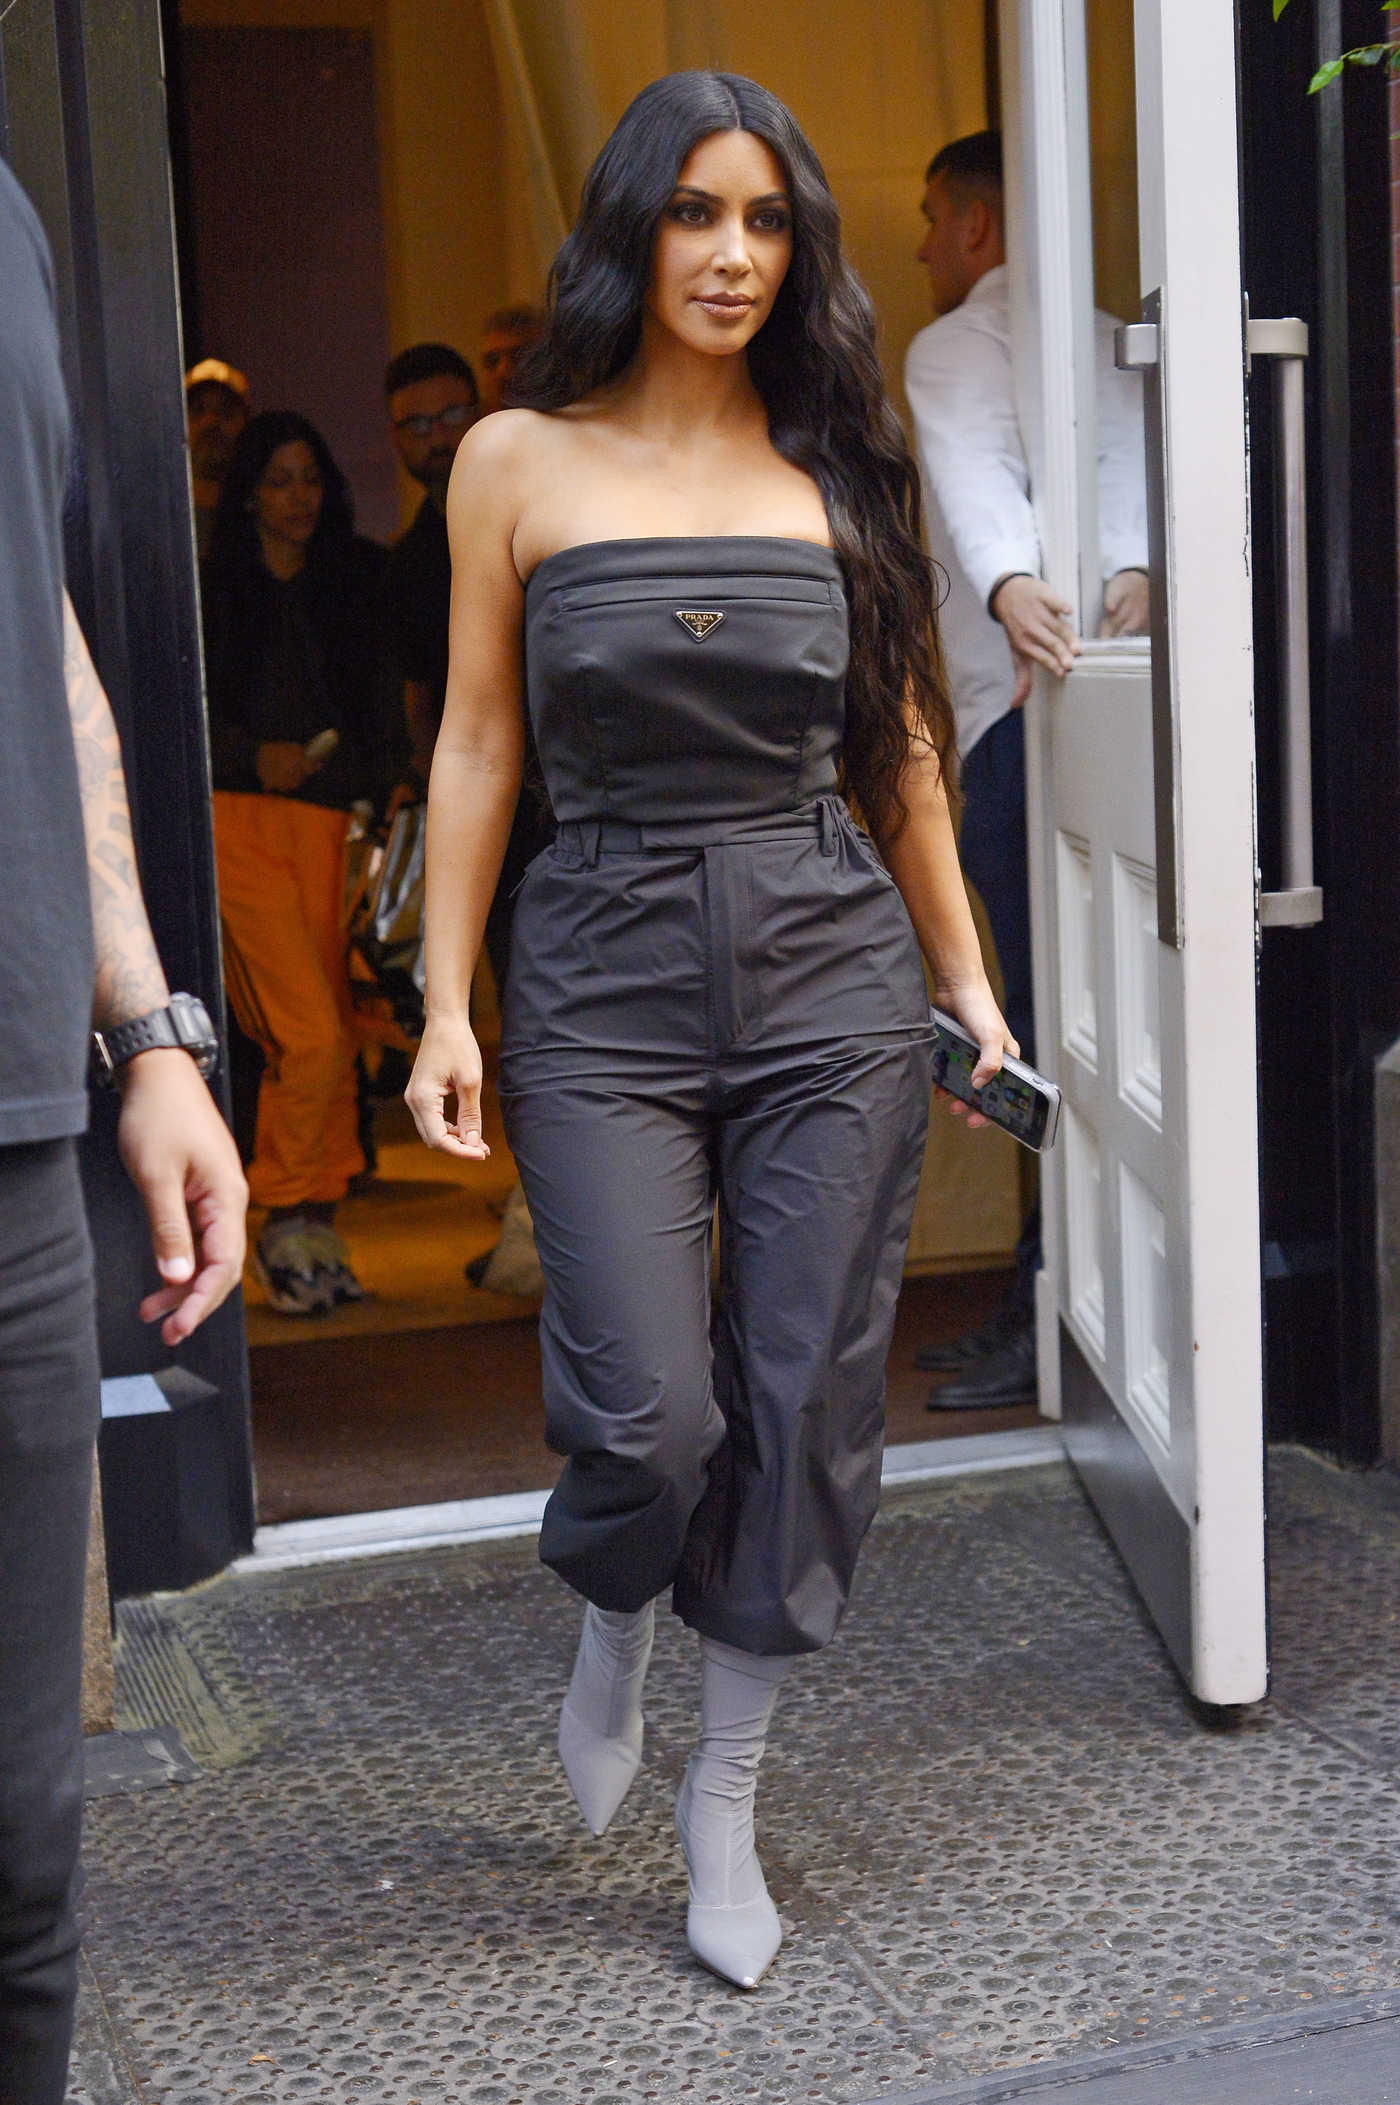 Kim Kardashian in a Gray Overalls Leaves Her Hotel in New York City 09/30/2018